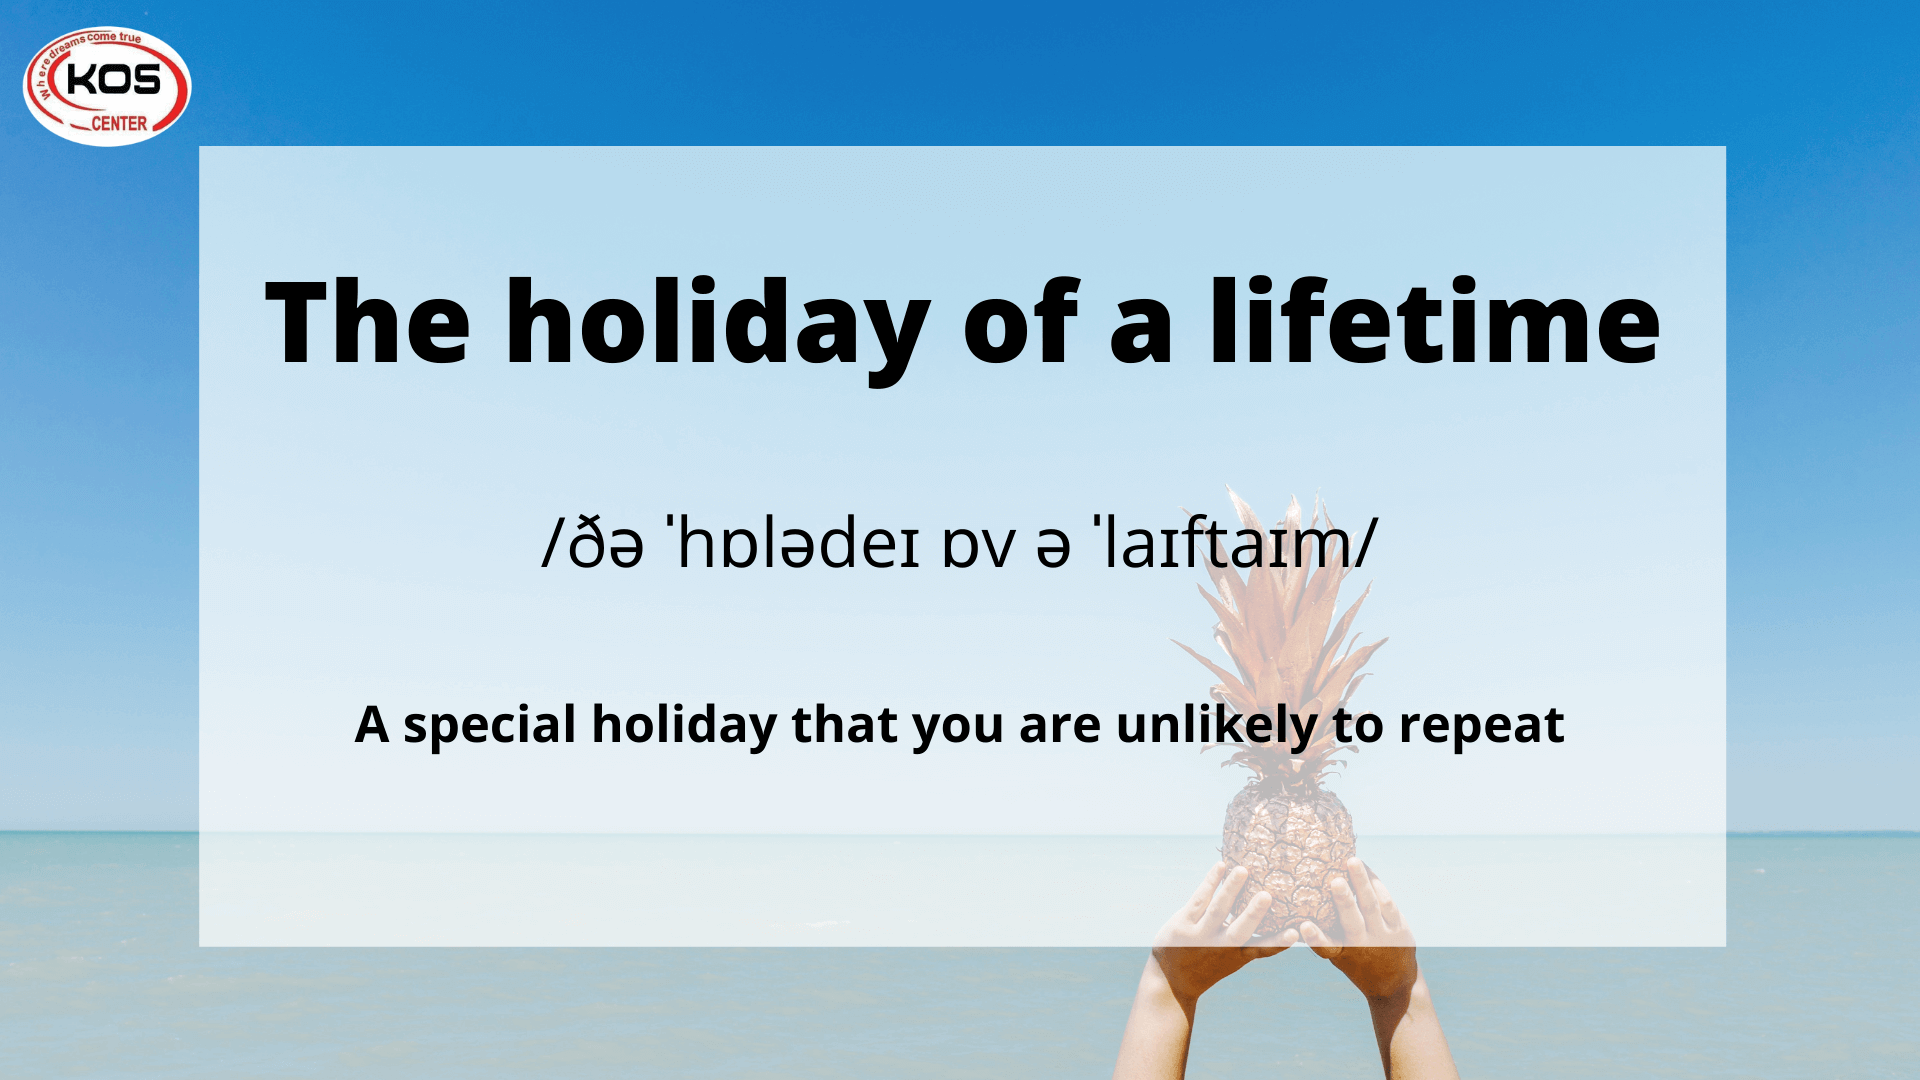 The holiday of a lifetime